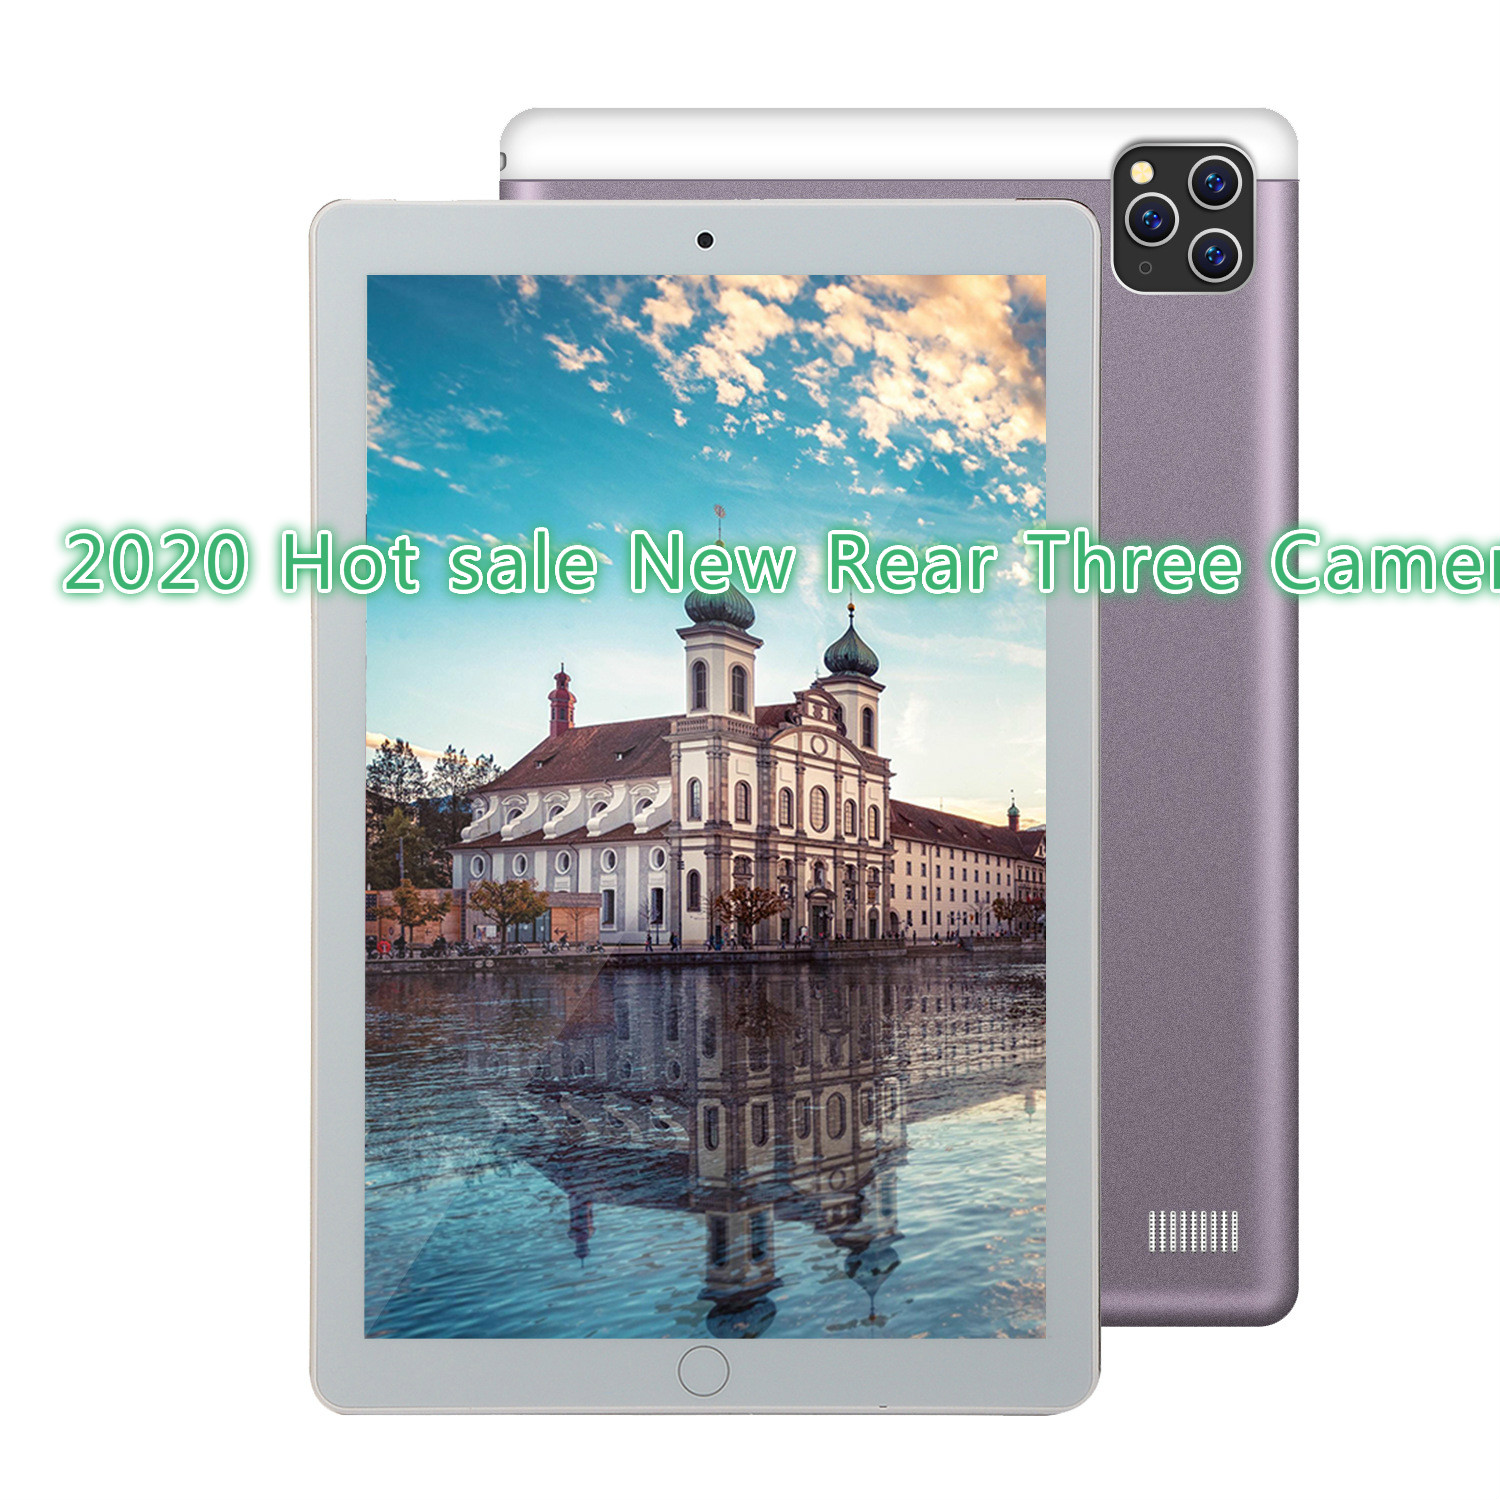 2020 Android 9.0 Tablet PC 10.1inch  6G+128GBTablet Support 4G Dual Card Phone Call 1280*800  Android Kids Tablet